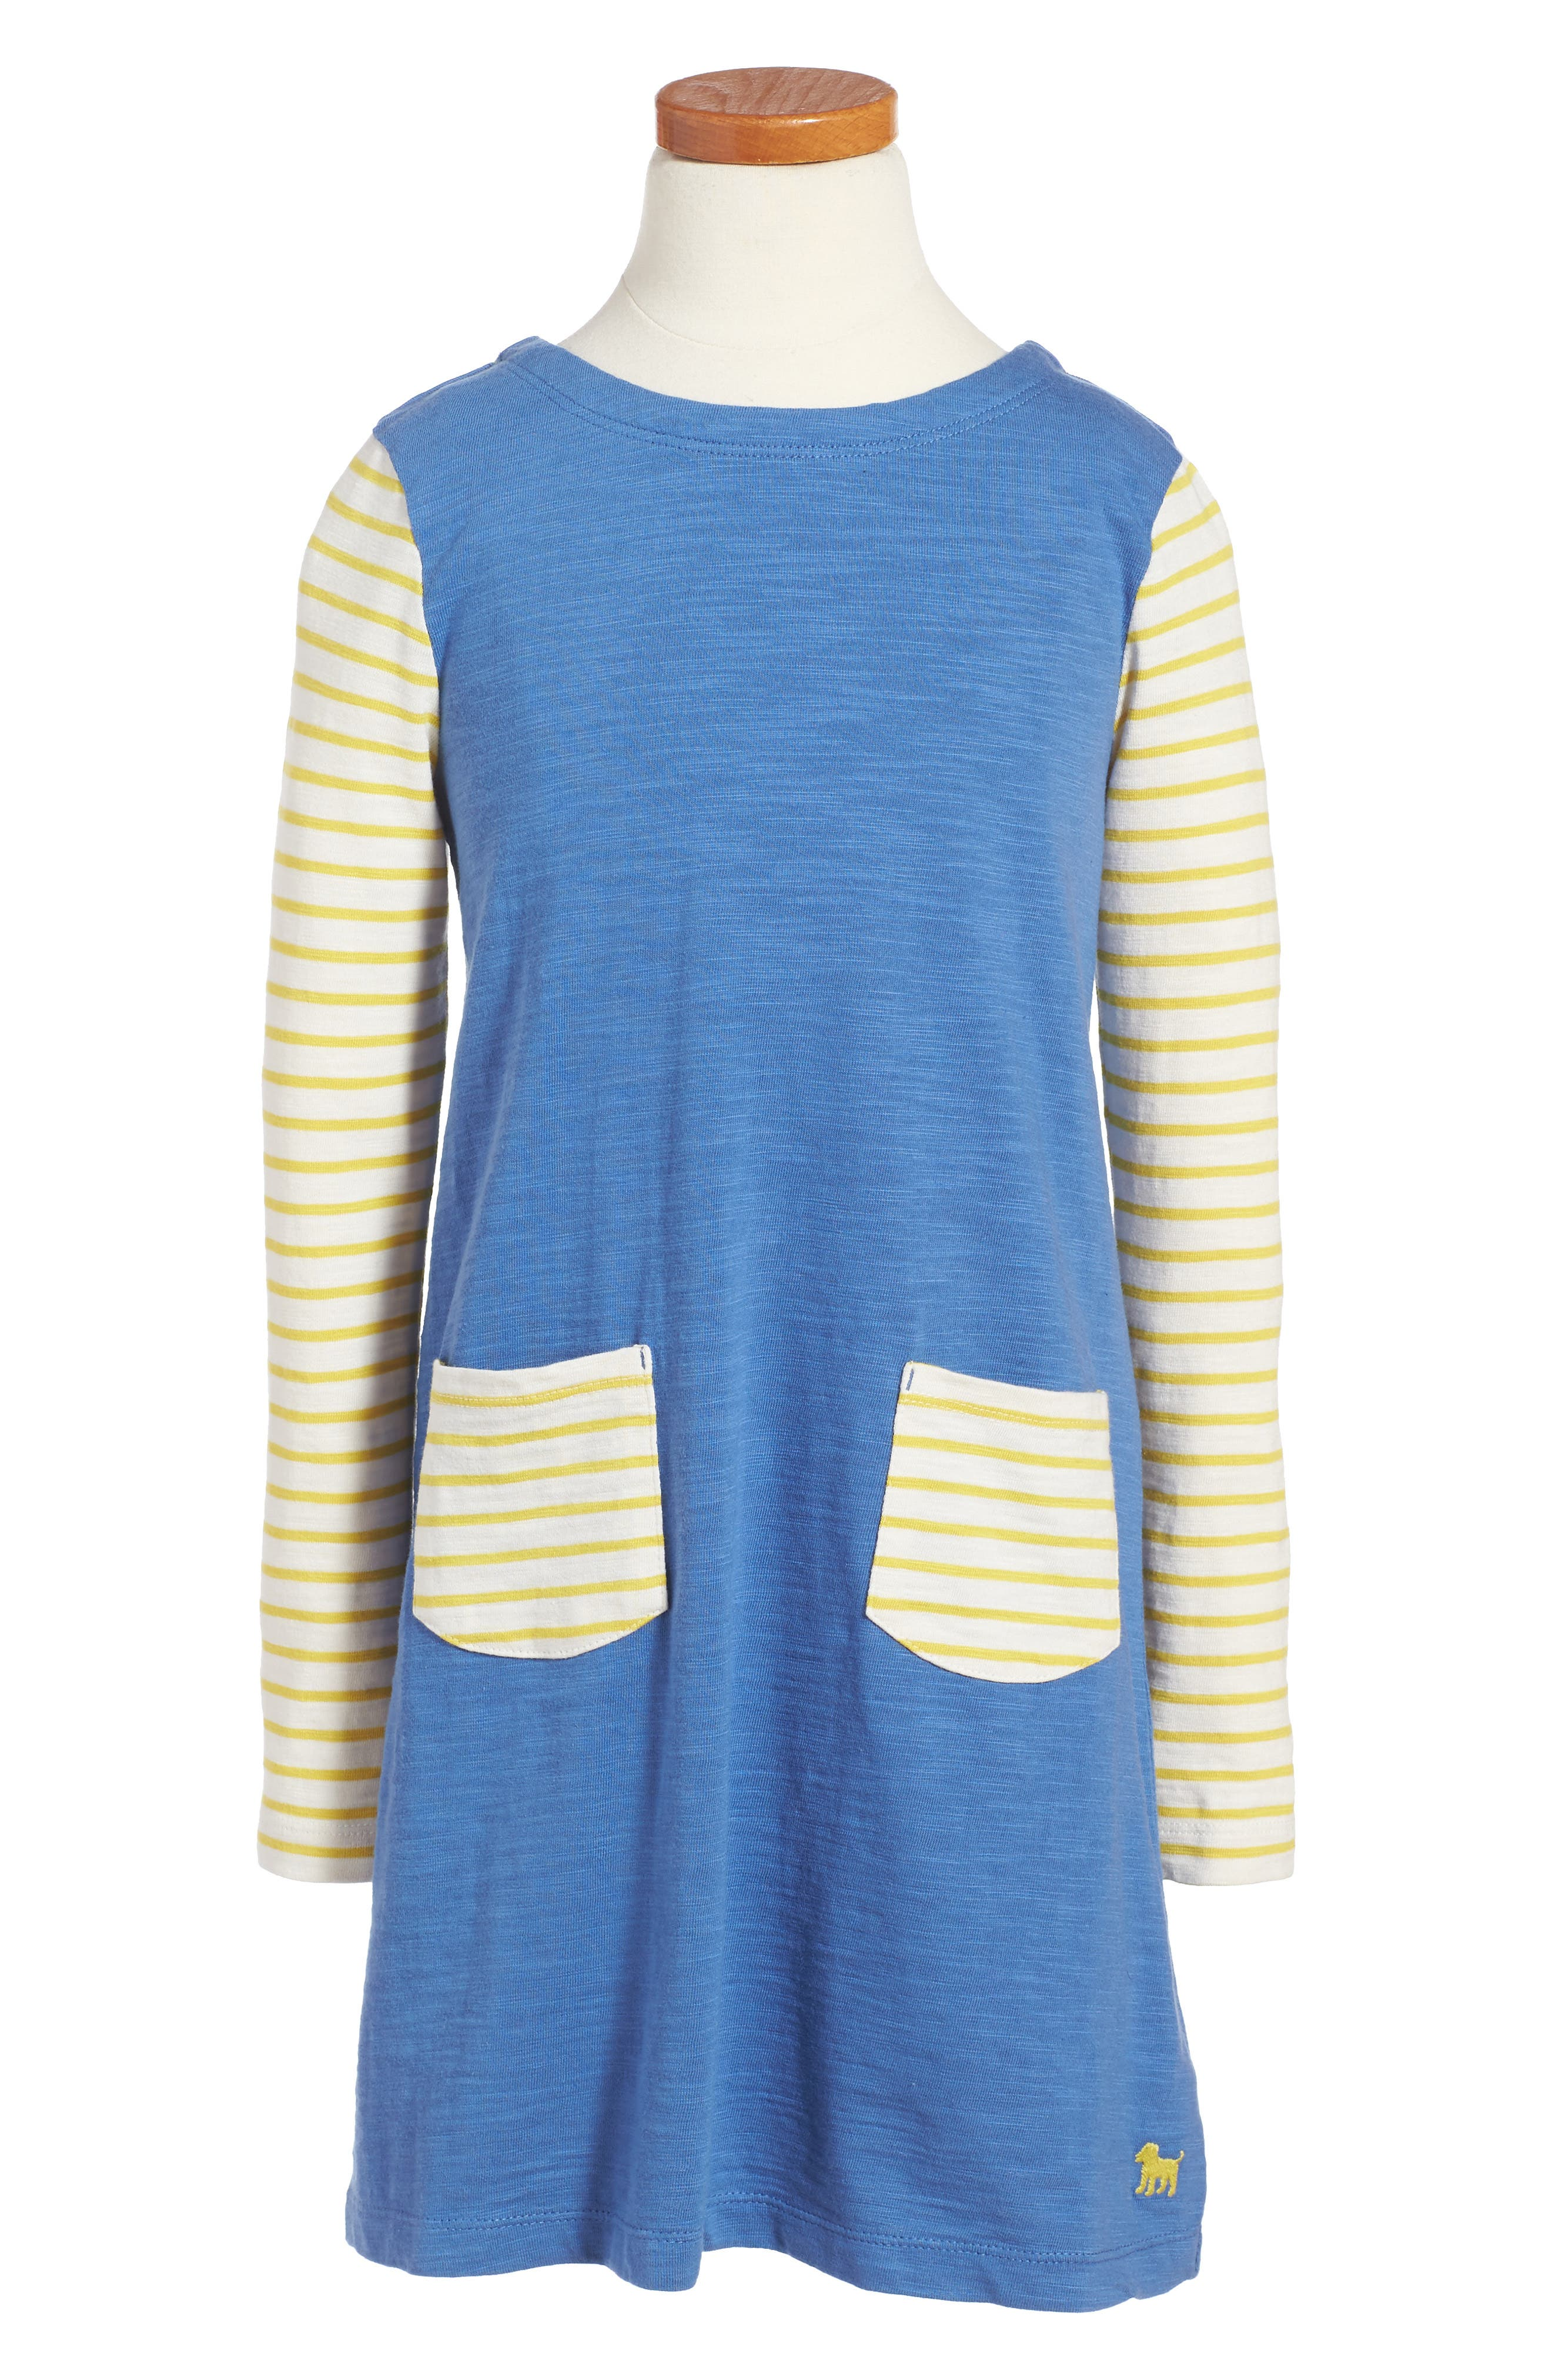 MINI BODEN Stripy Jersey Dress